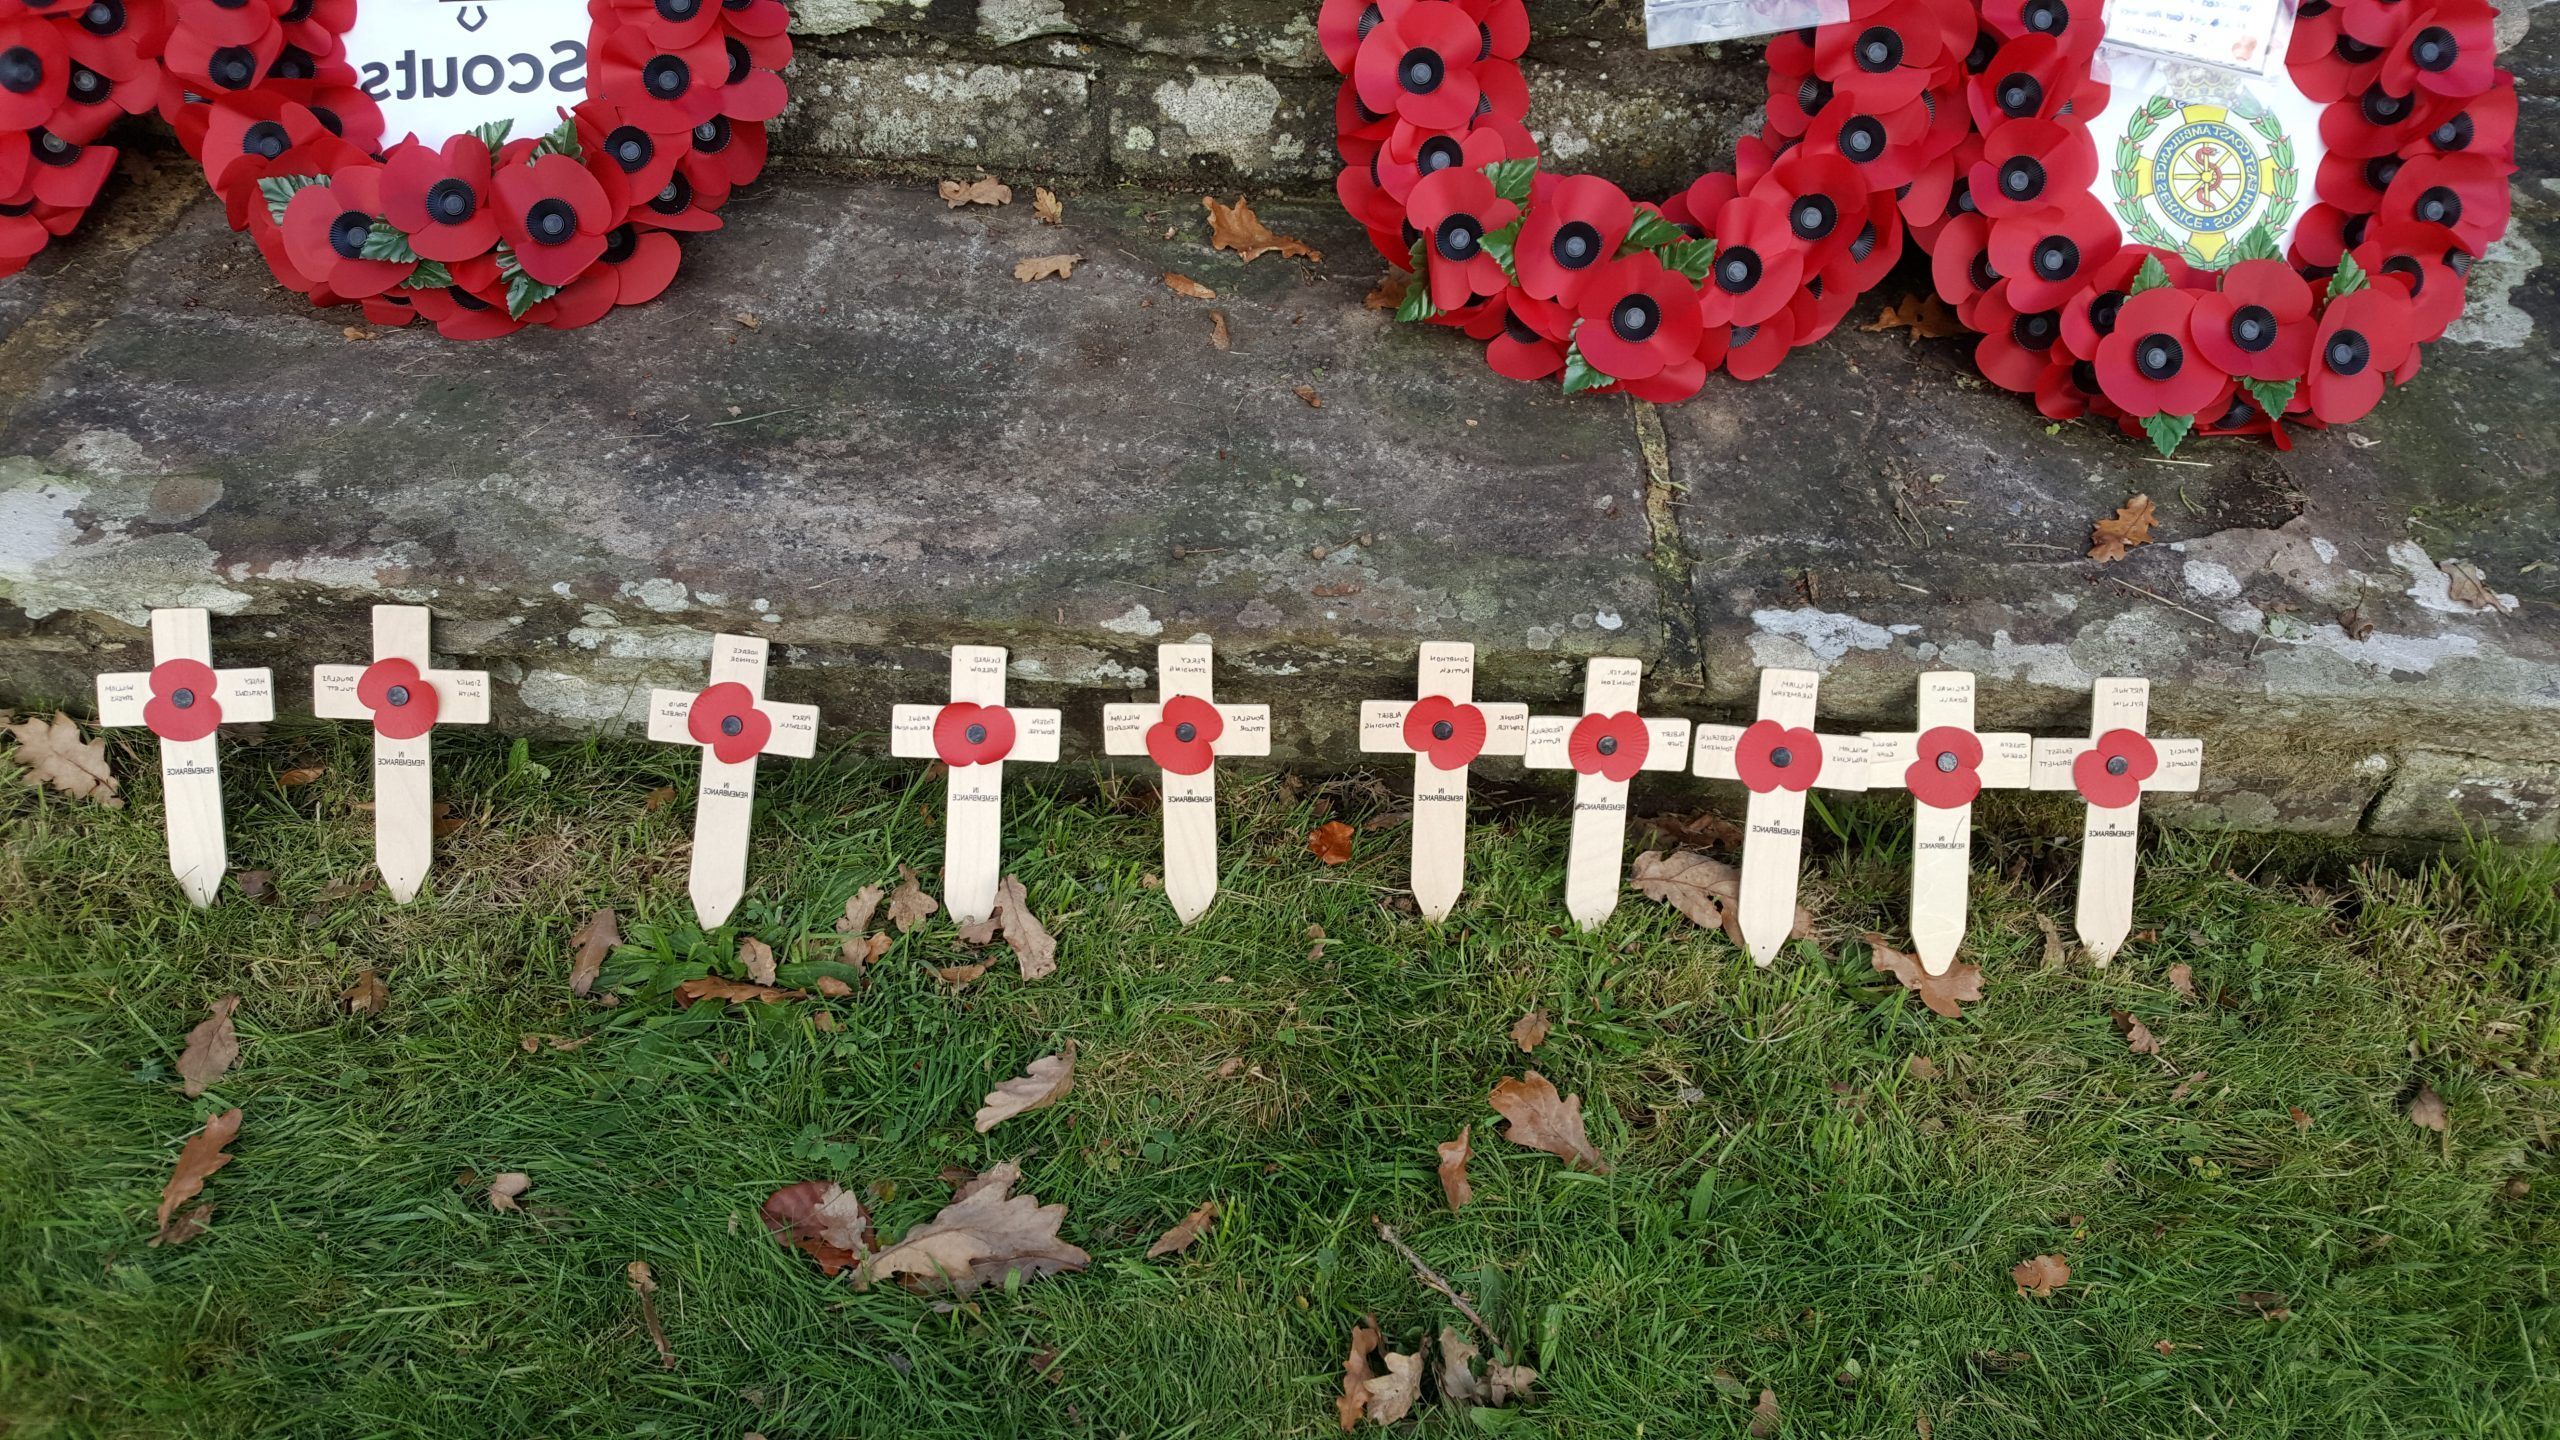 Fittleworth Remembers those who did not return.